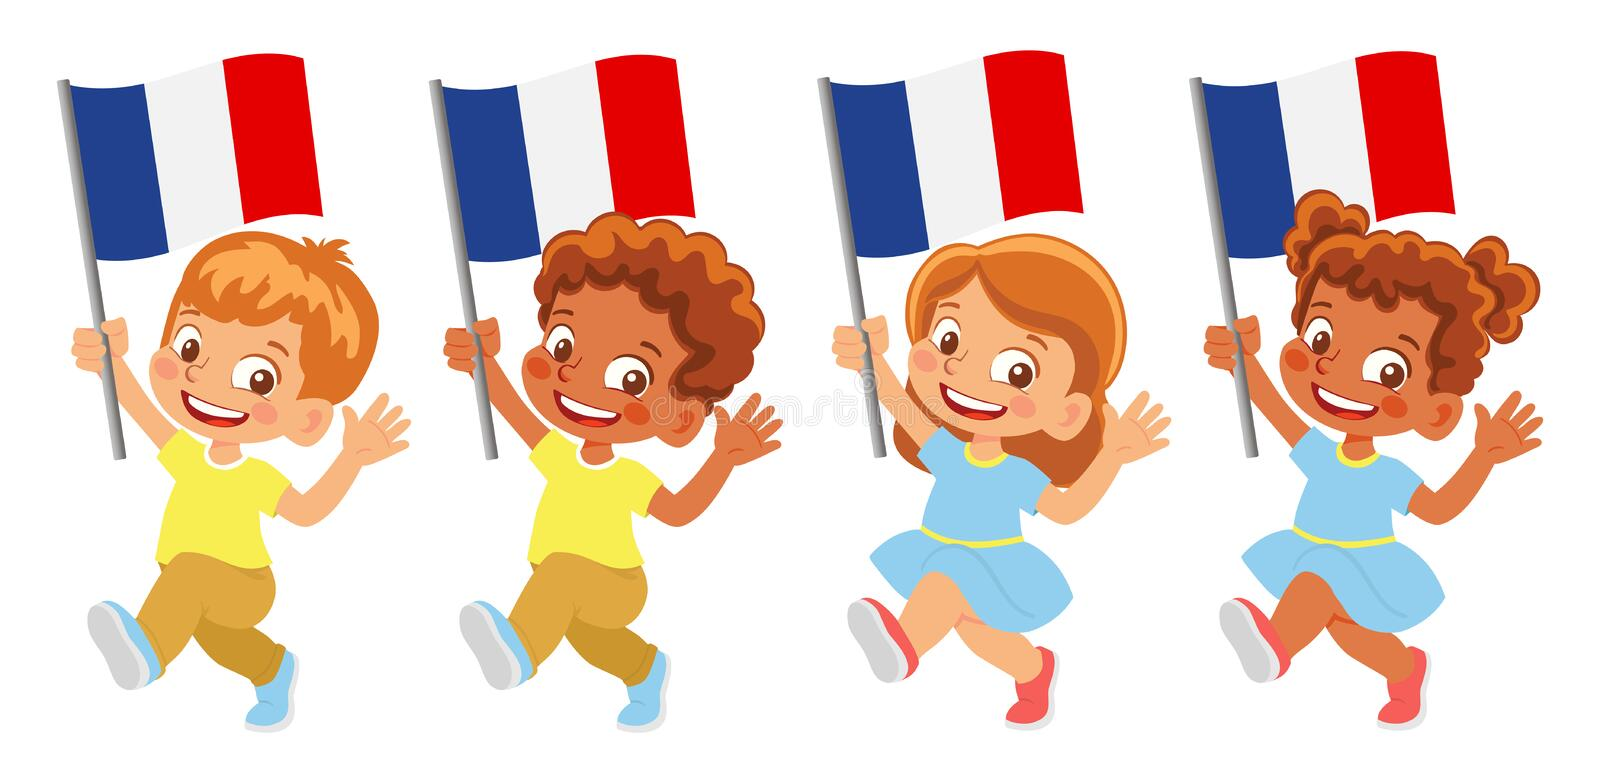 Free French Flag Clipart, Download Free Clip Art, Free Clip Art on Clipart  Library